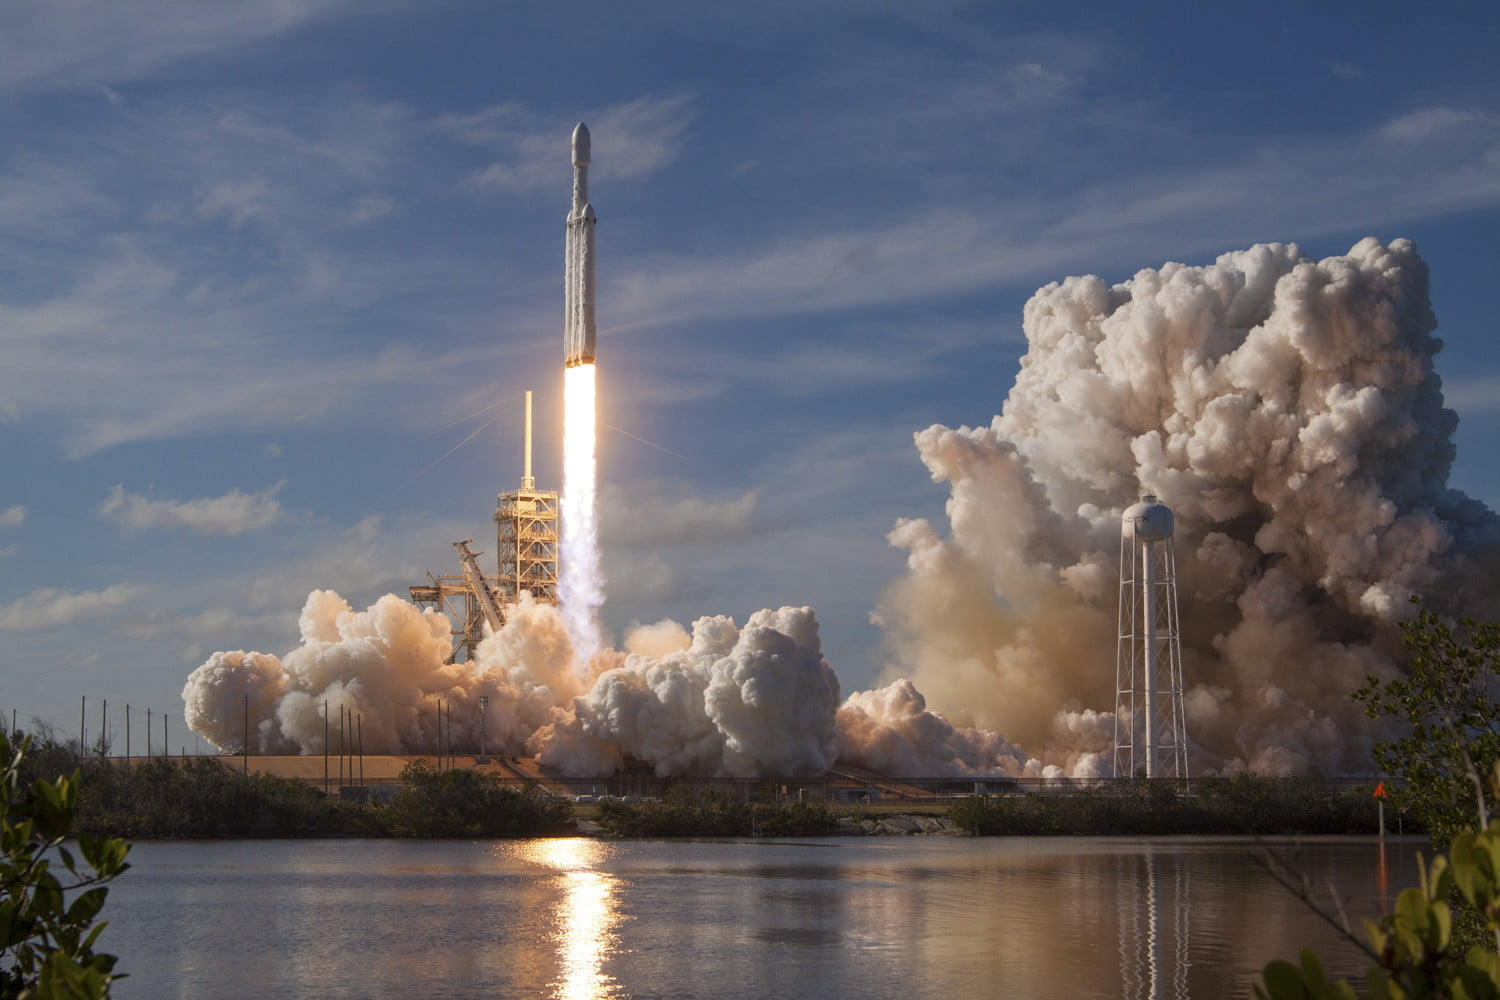 Bitcoin (BTC) rockets above $4,000 as positive newsflow encourages bulls 13